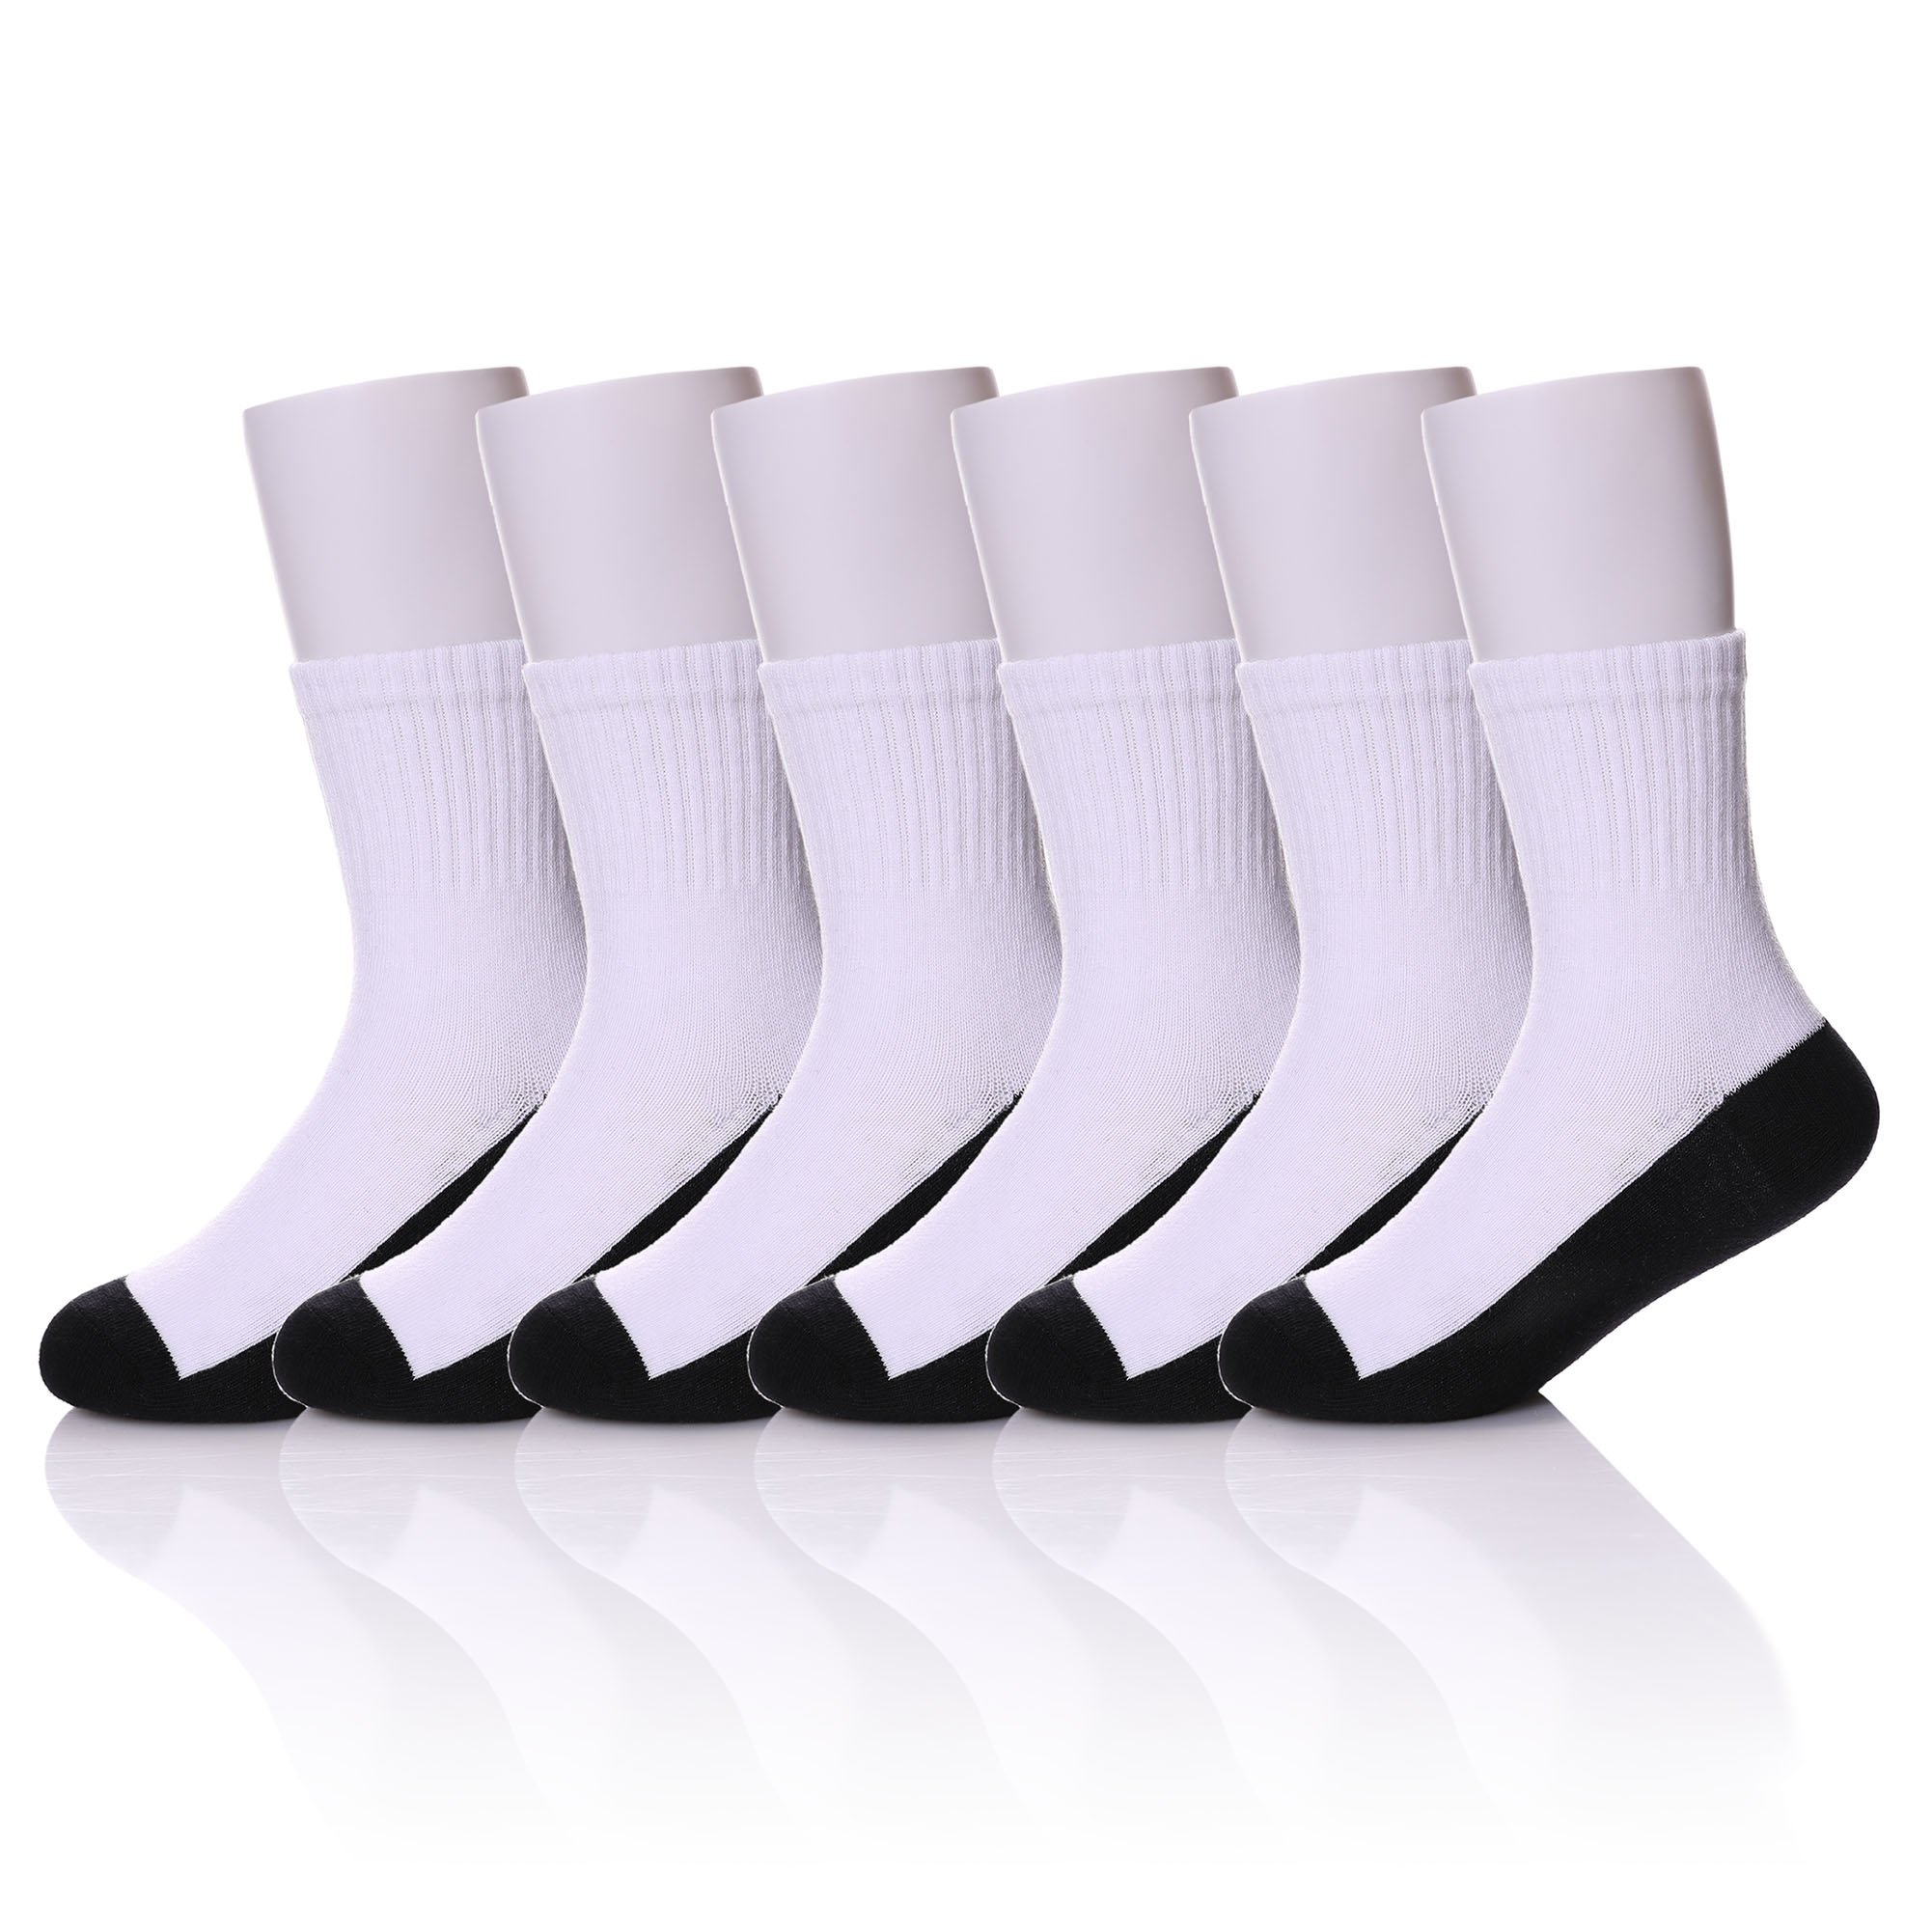 MIUBEAR 6 Pack Unisex Toddler Big Boys Girls Athletic Ribbed Cotton Classic Crew School Socks 3-16 Years Old (9-13 Year Old, White & Black) by MIUBEAR